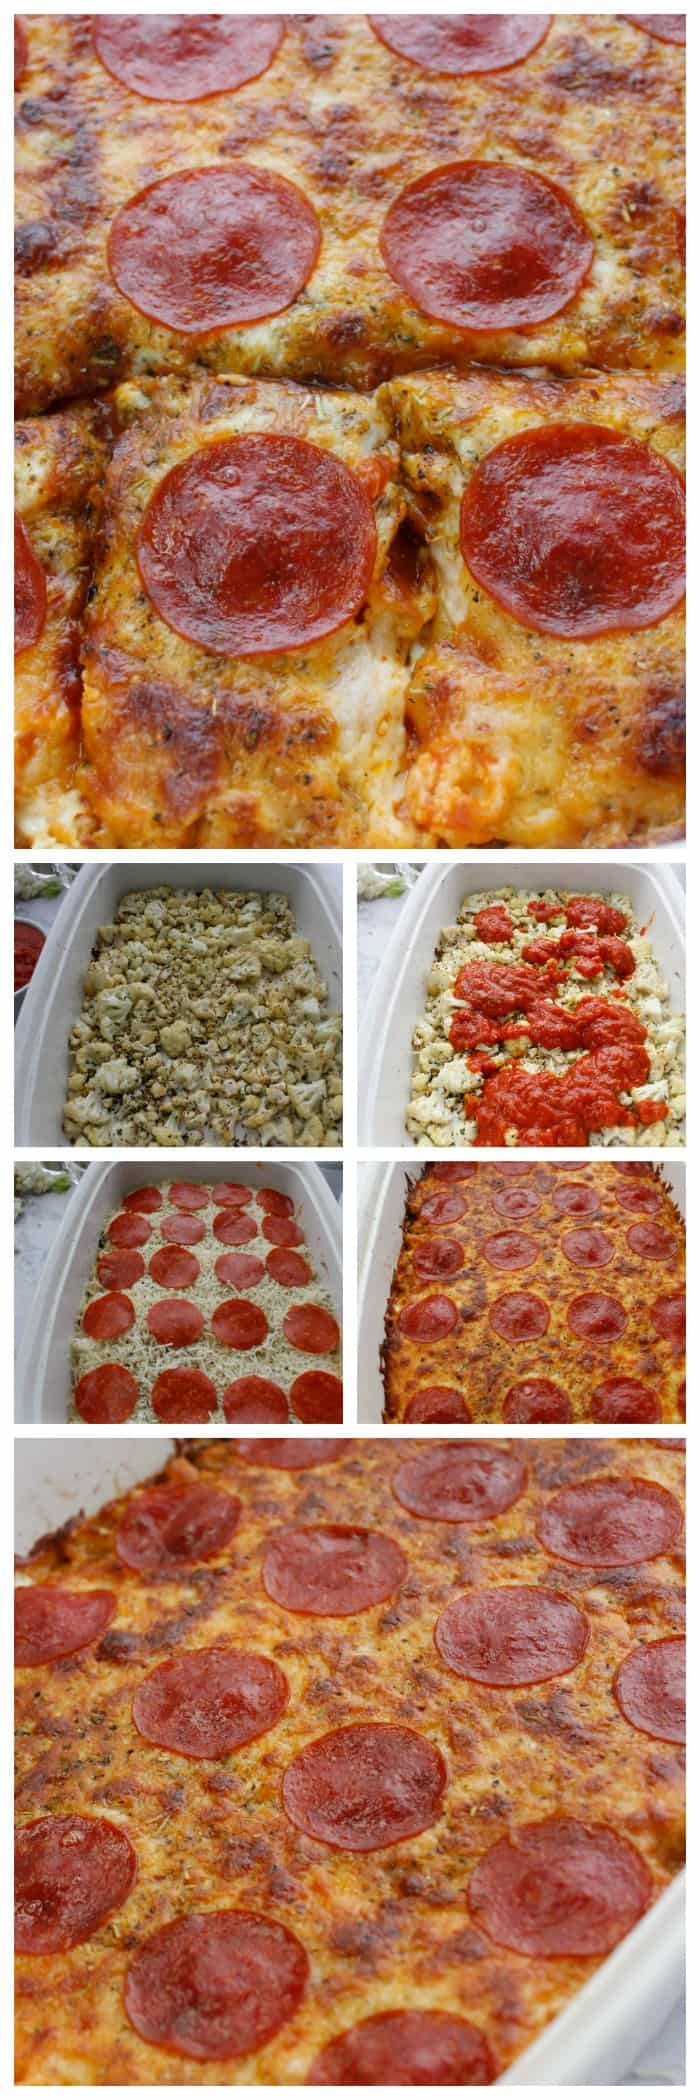 Easy Keto Pizza Casserole Recipe